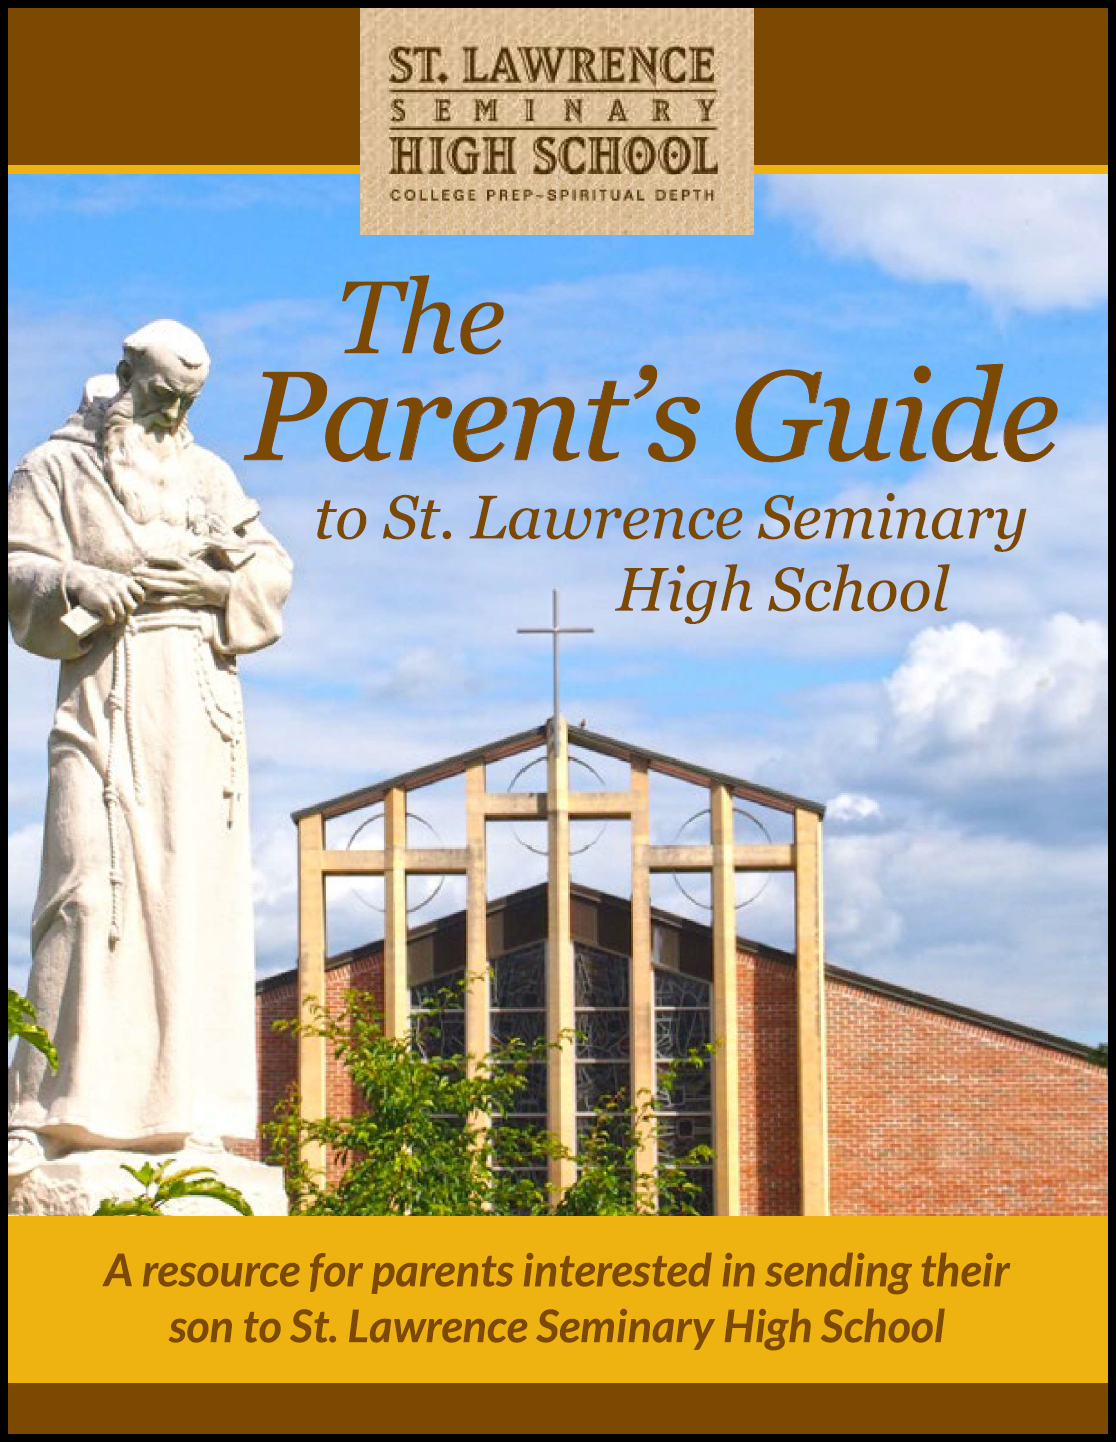 Parents Guide Cover 8px border.png